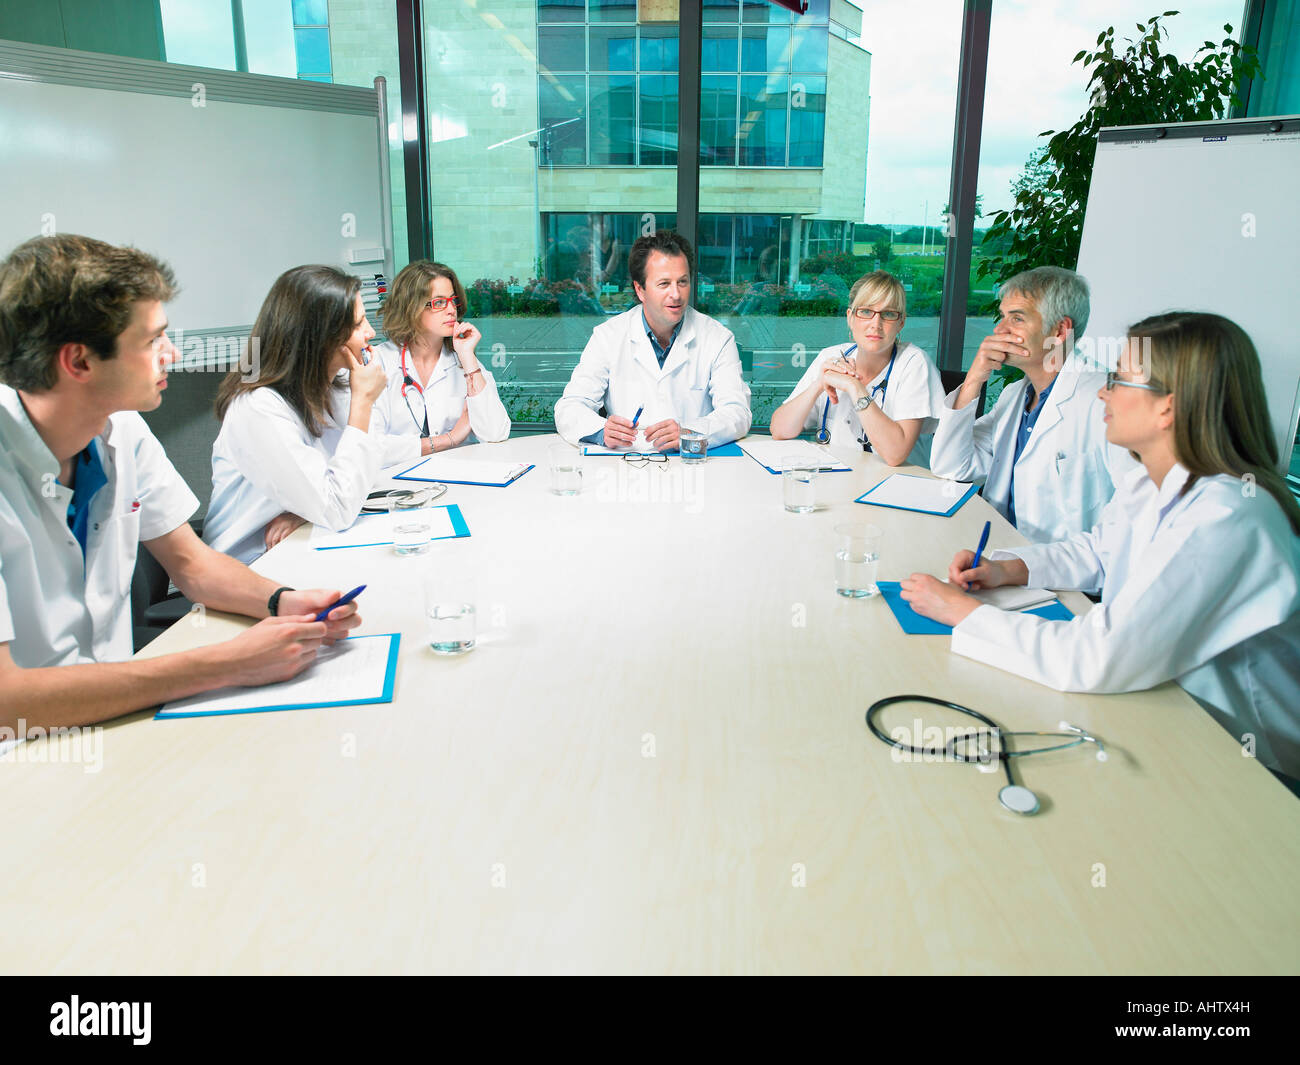 Meeting between a group of doctors. - Stock Image